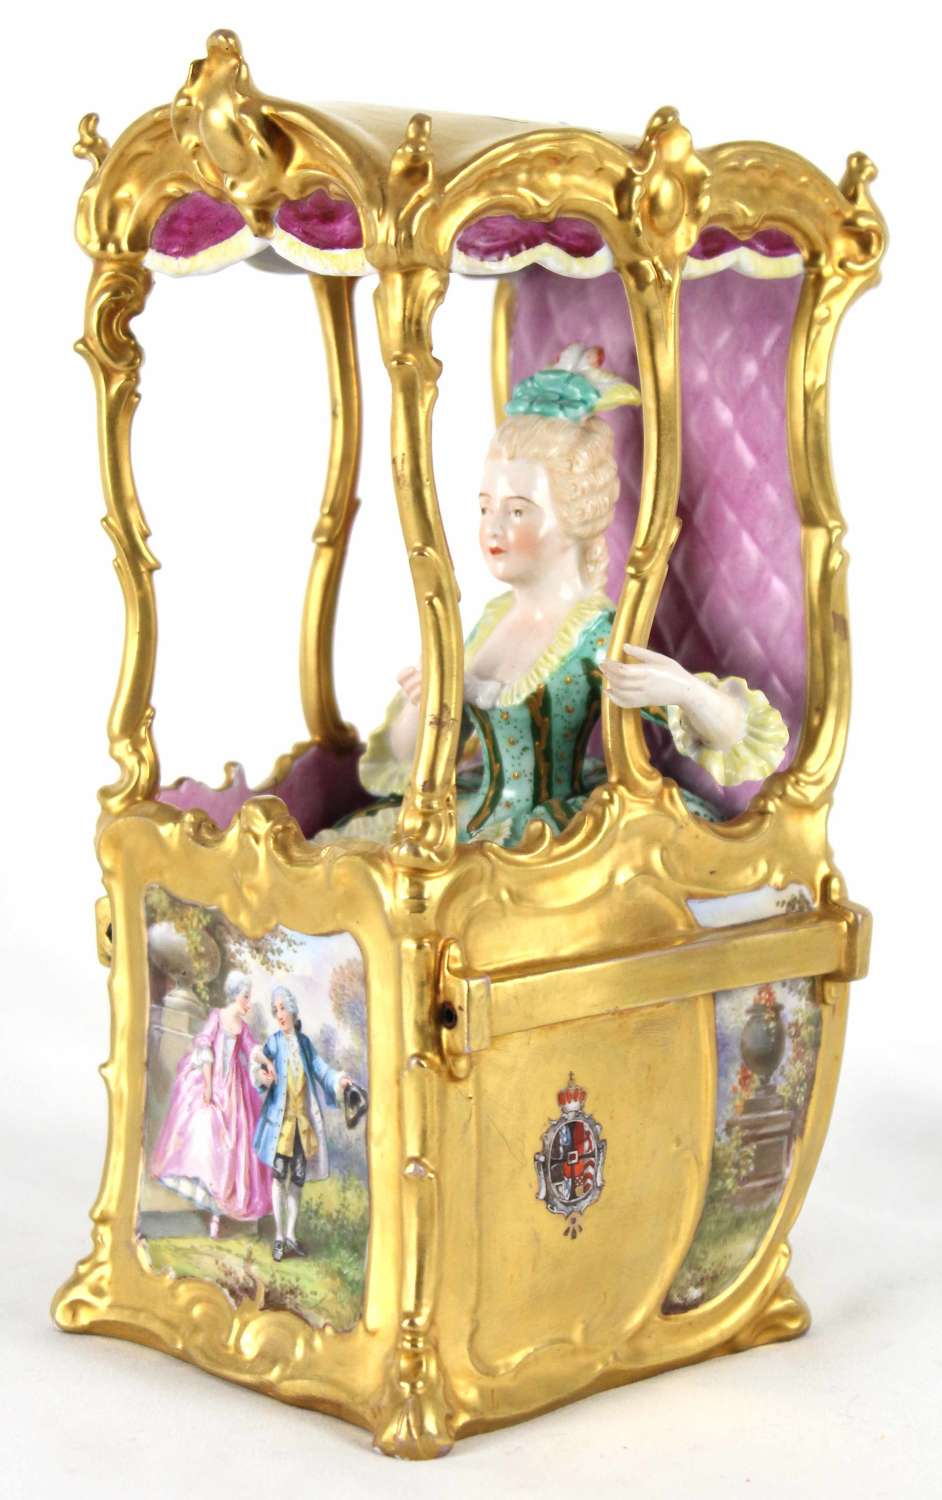 A Late 19th C. Continental Porcelain Sedan Chair Figure Group